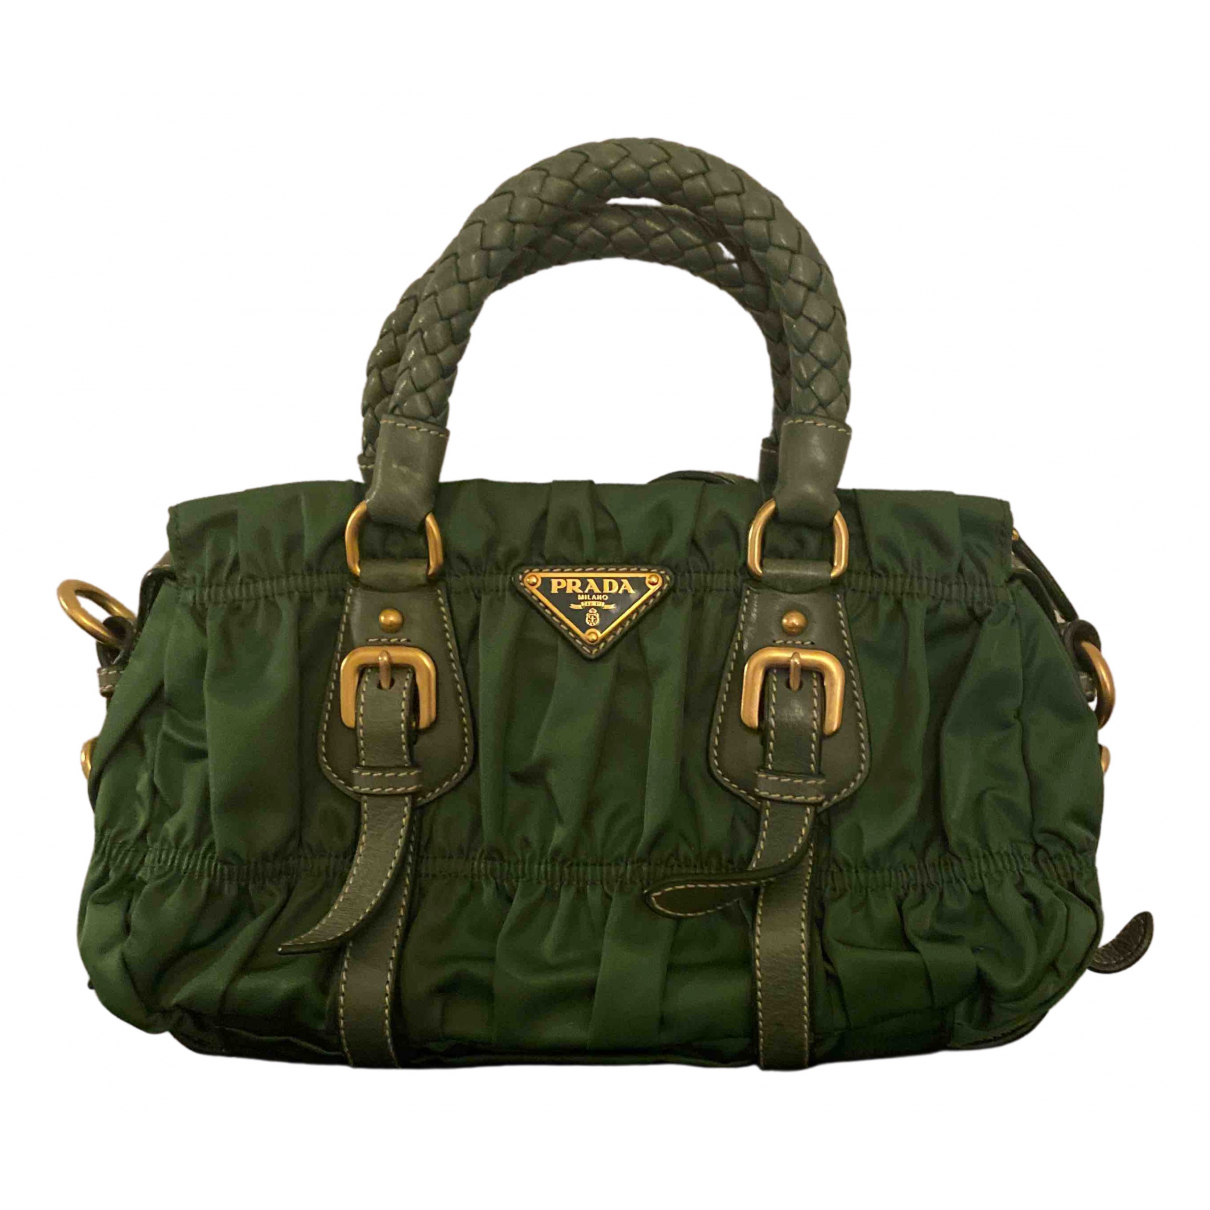 Prada N Green Cloth handbag for Women N